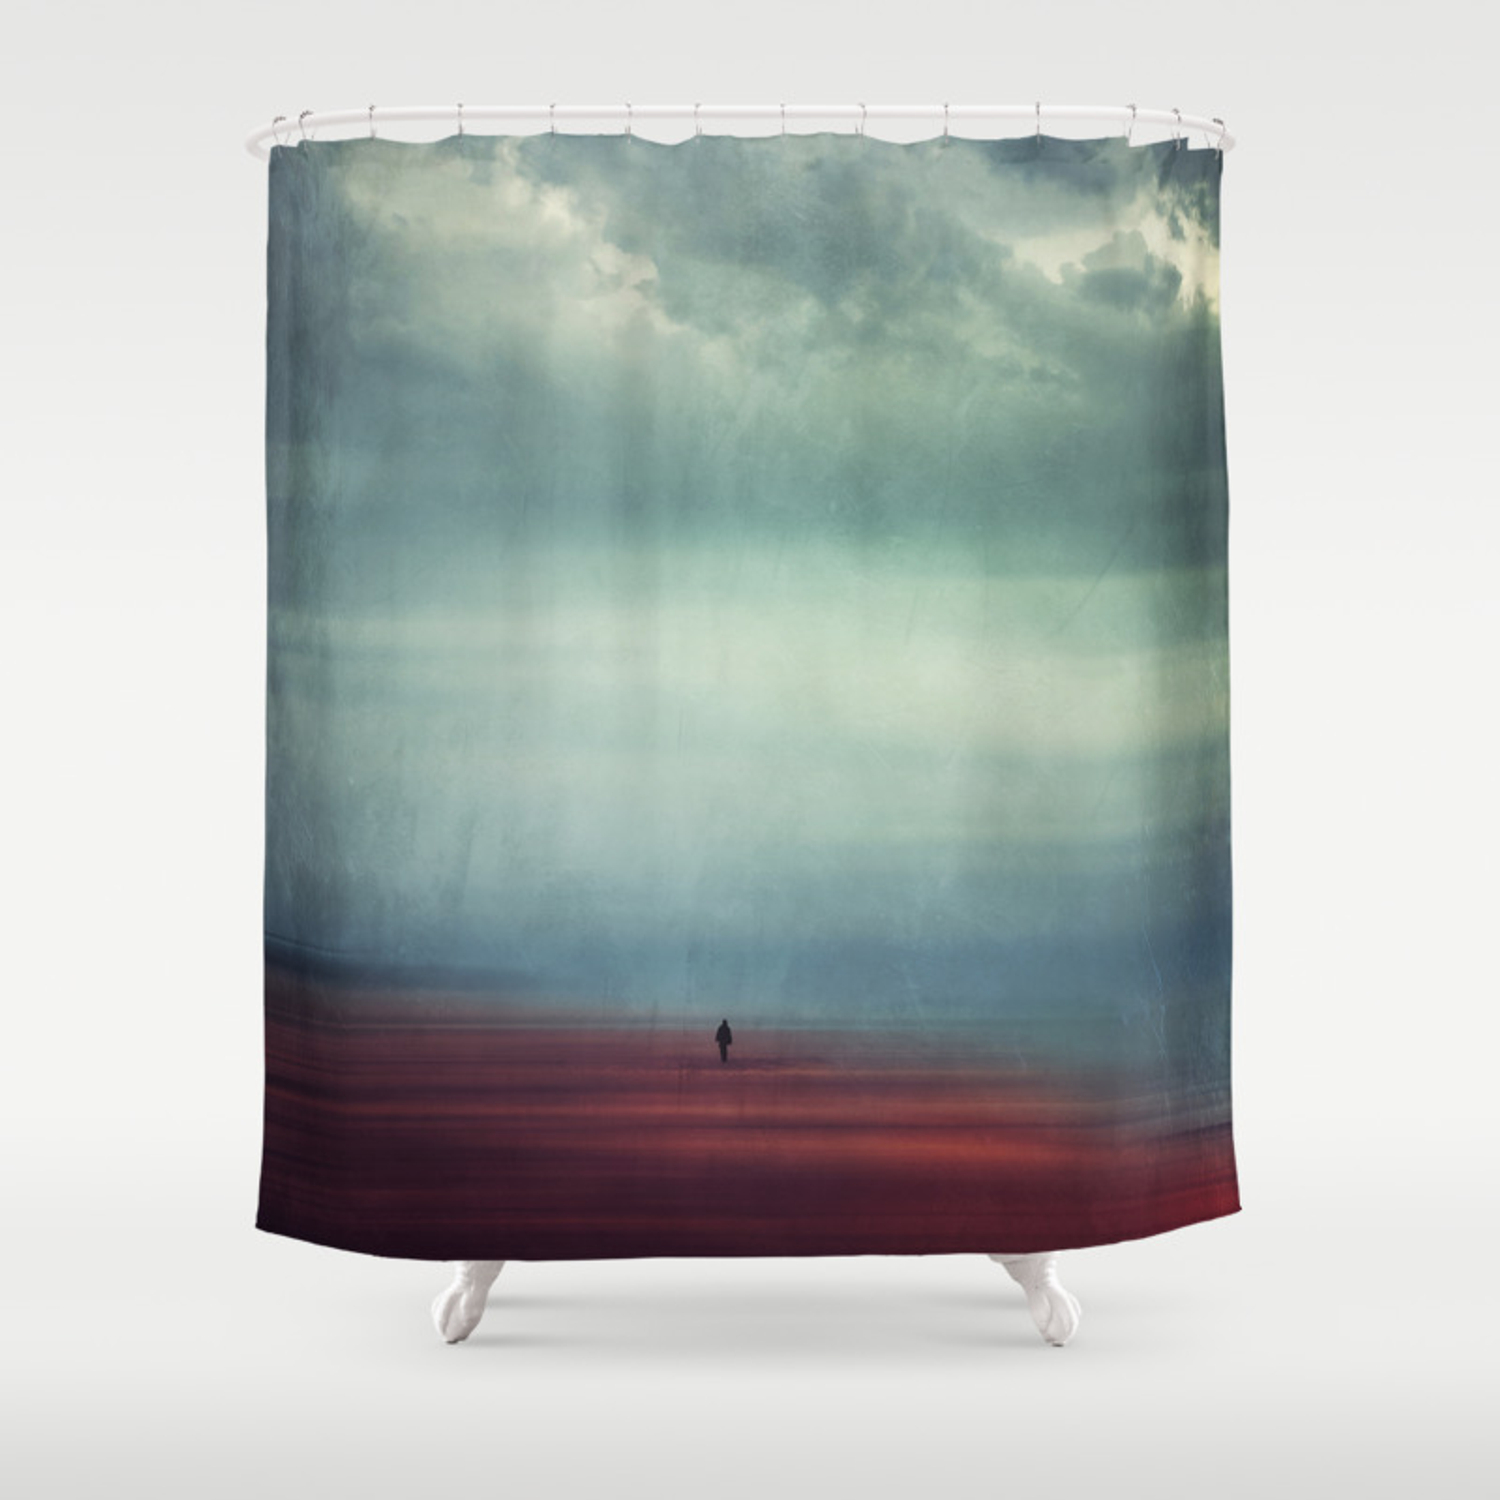 Nothing Matters Abstract Minimal Beach Scene Shower Curtain